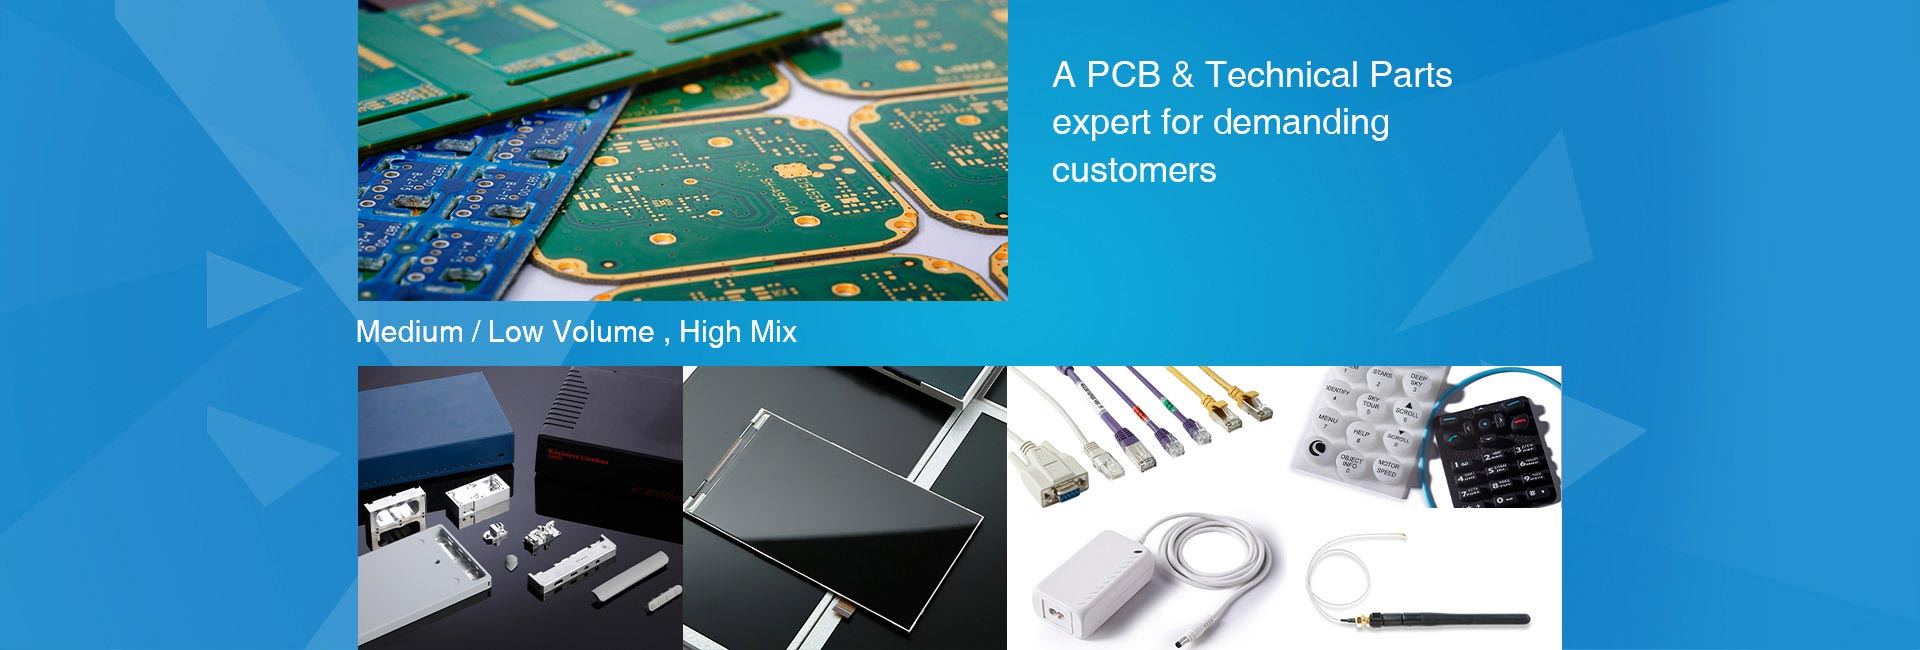 A PCB&Technical parts expert for demanding customers